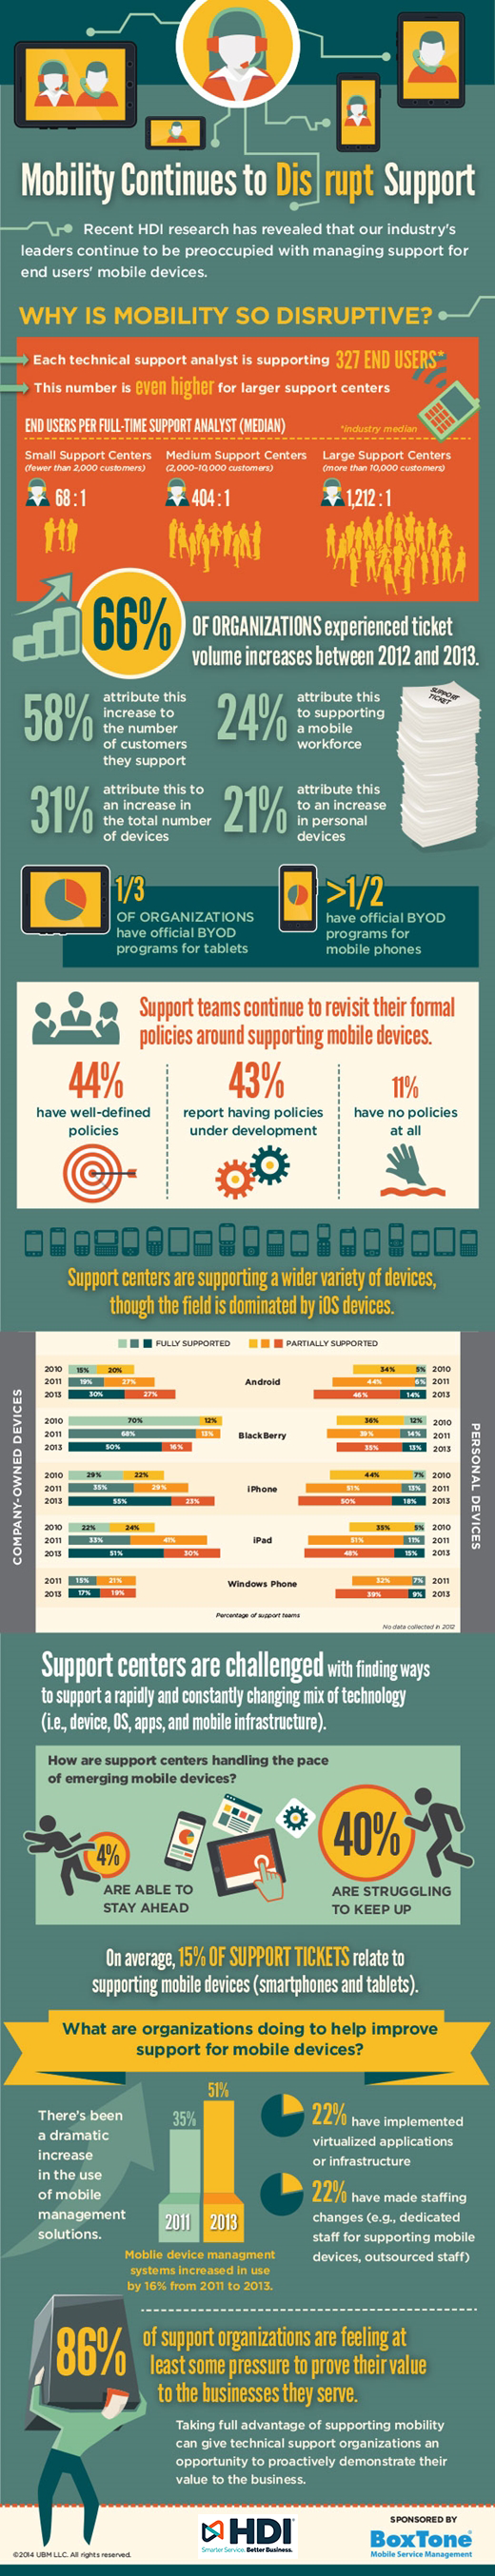 Mobility is Disrupting Support Infographic